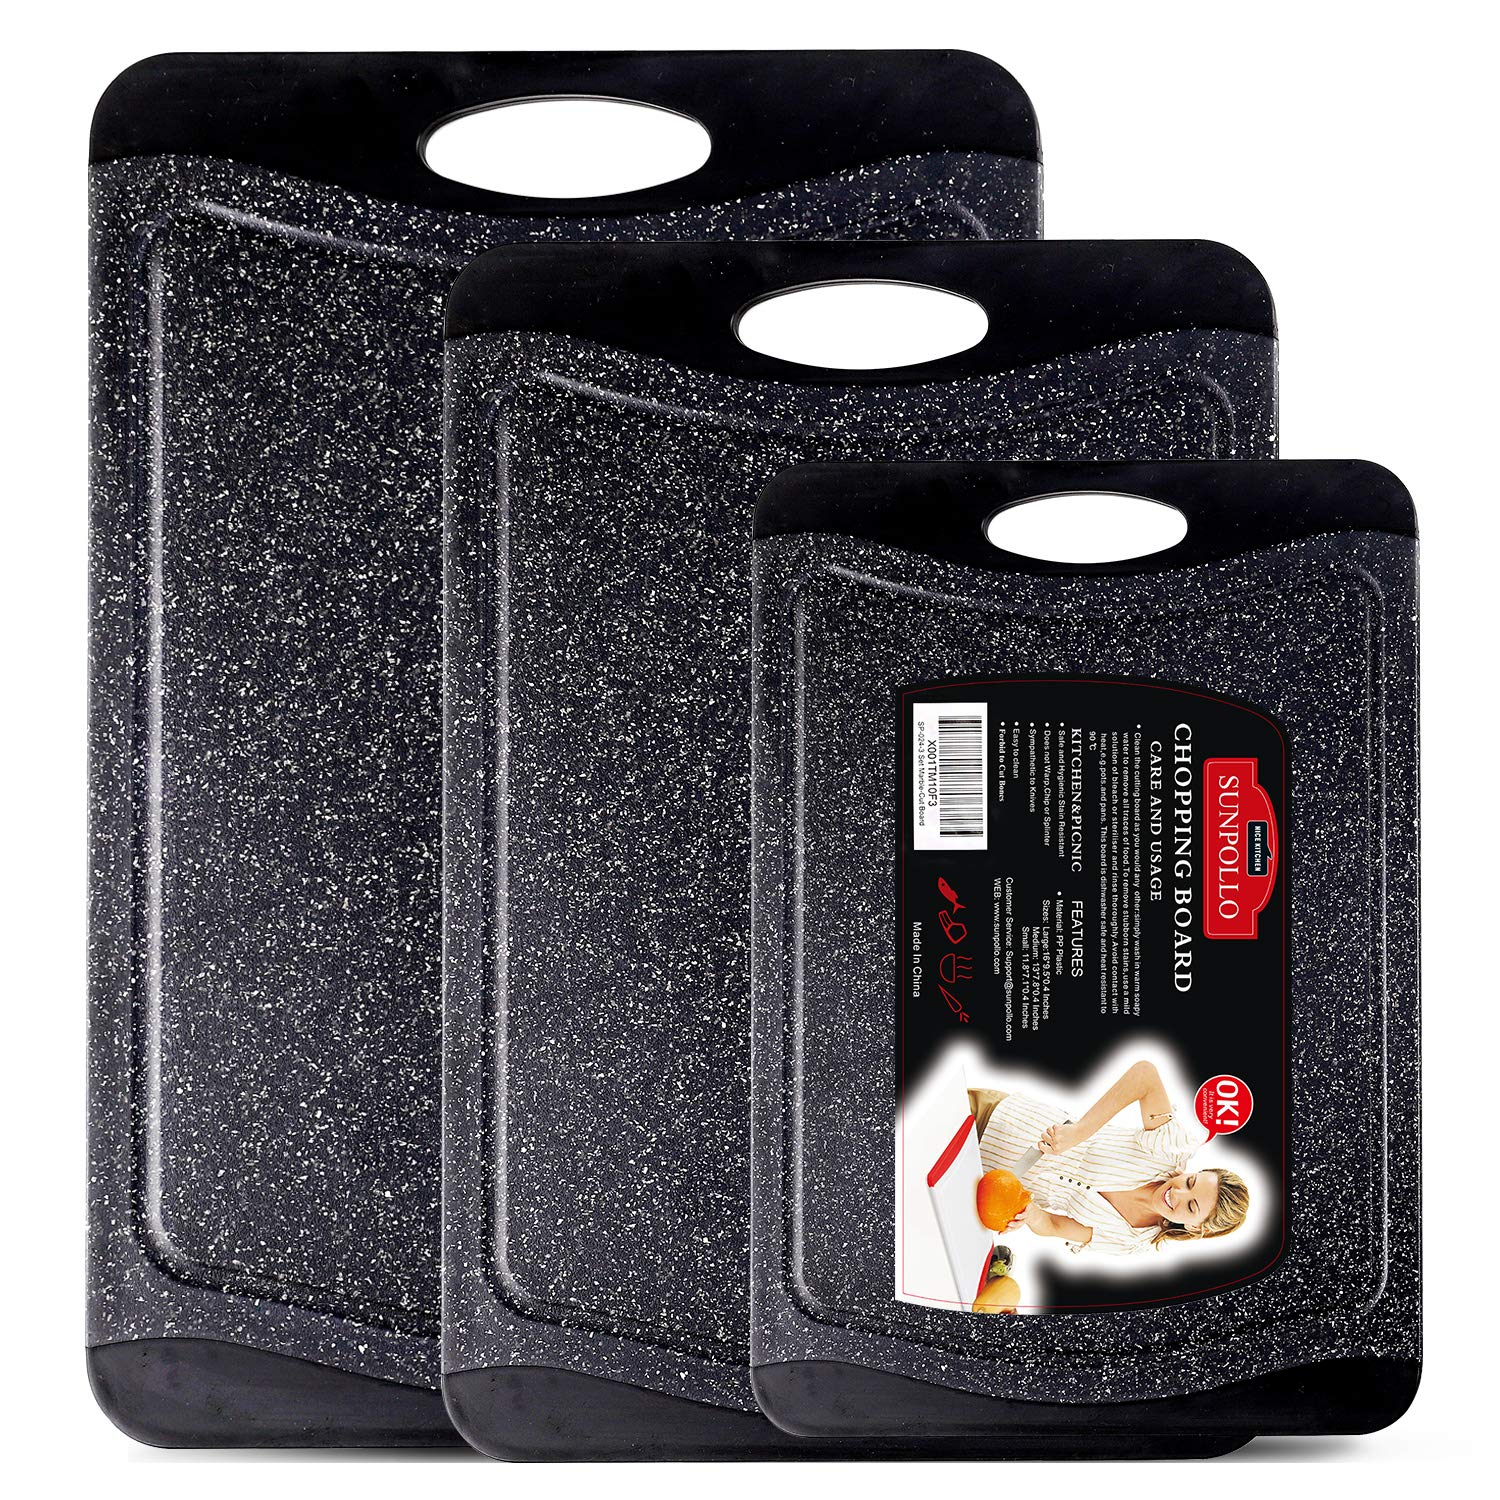 SUNPOLLO Large Cutting Board (3-Piece Set), Plastic Kitchen Chopping Board with Juice Groove - Marble Appearance, Non Slip, BPA Free, Dishwasher Safe and Larger Thicker Boards by SUNPOLLO